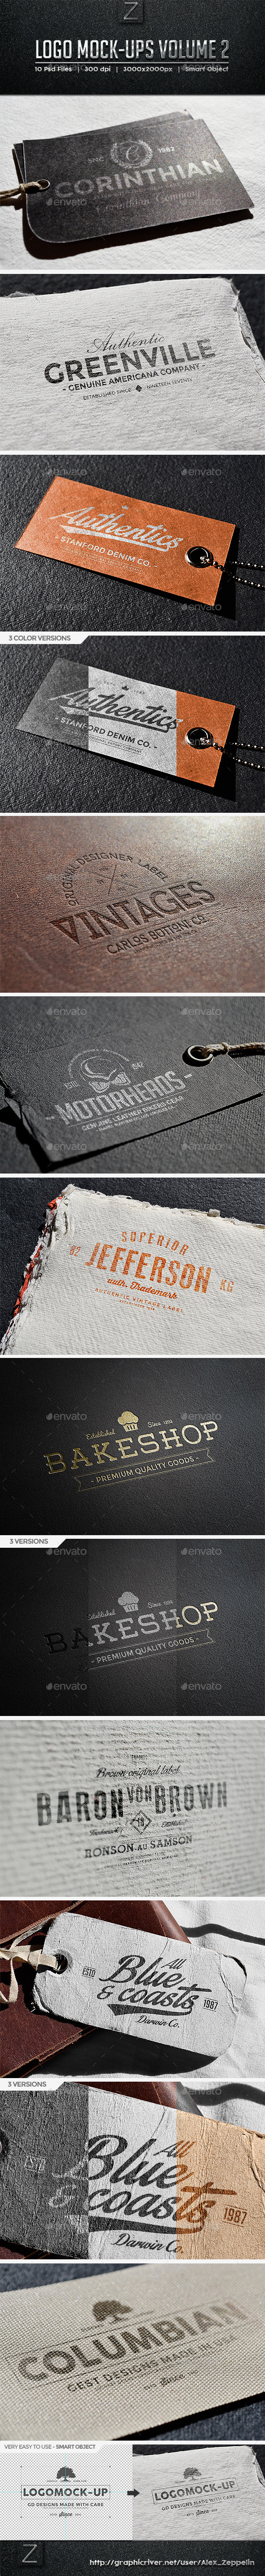 Logo Mock-ups Vol.2 - Logo Product Mock-Ups